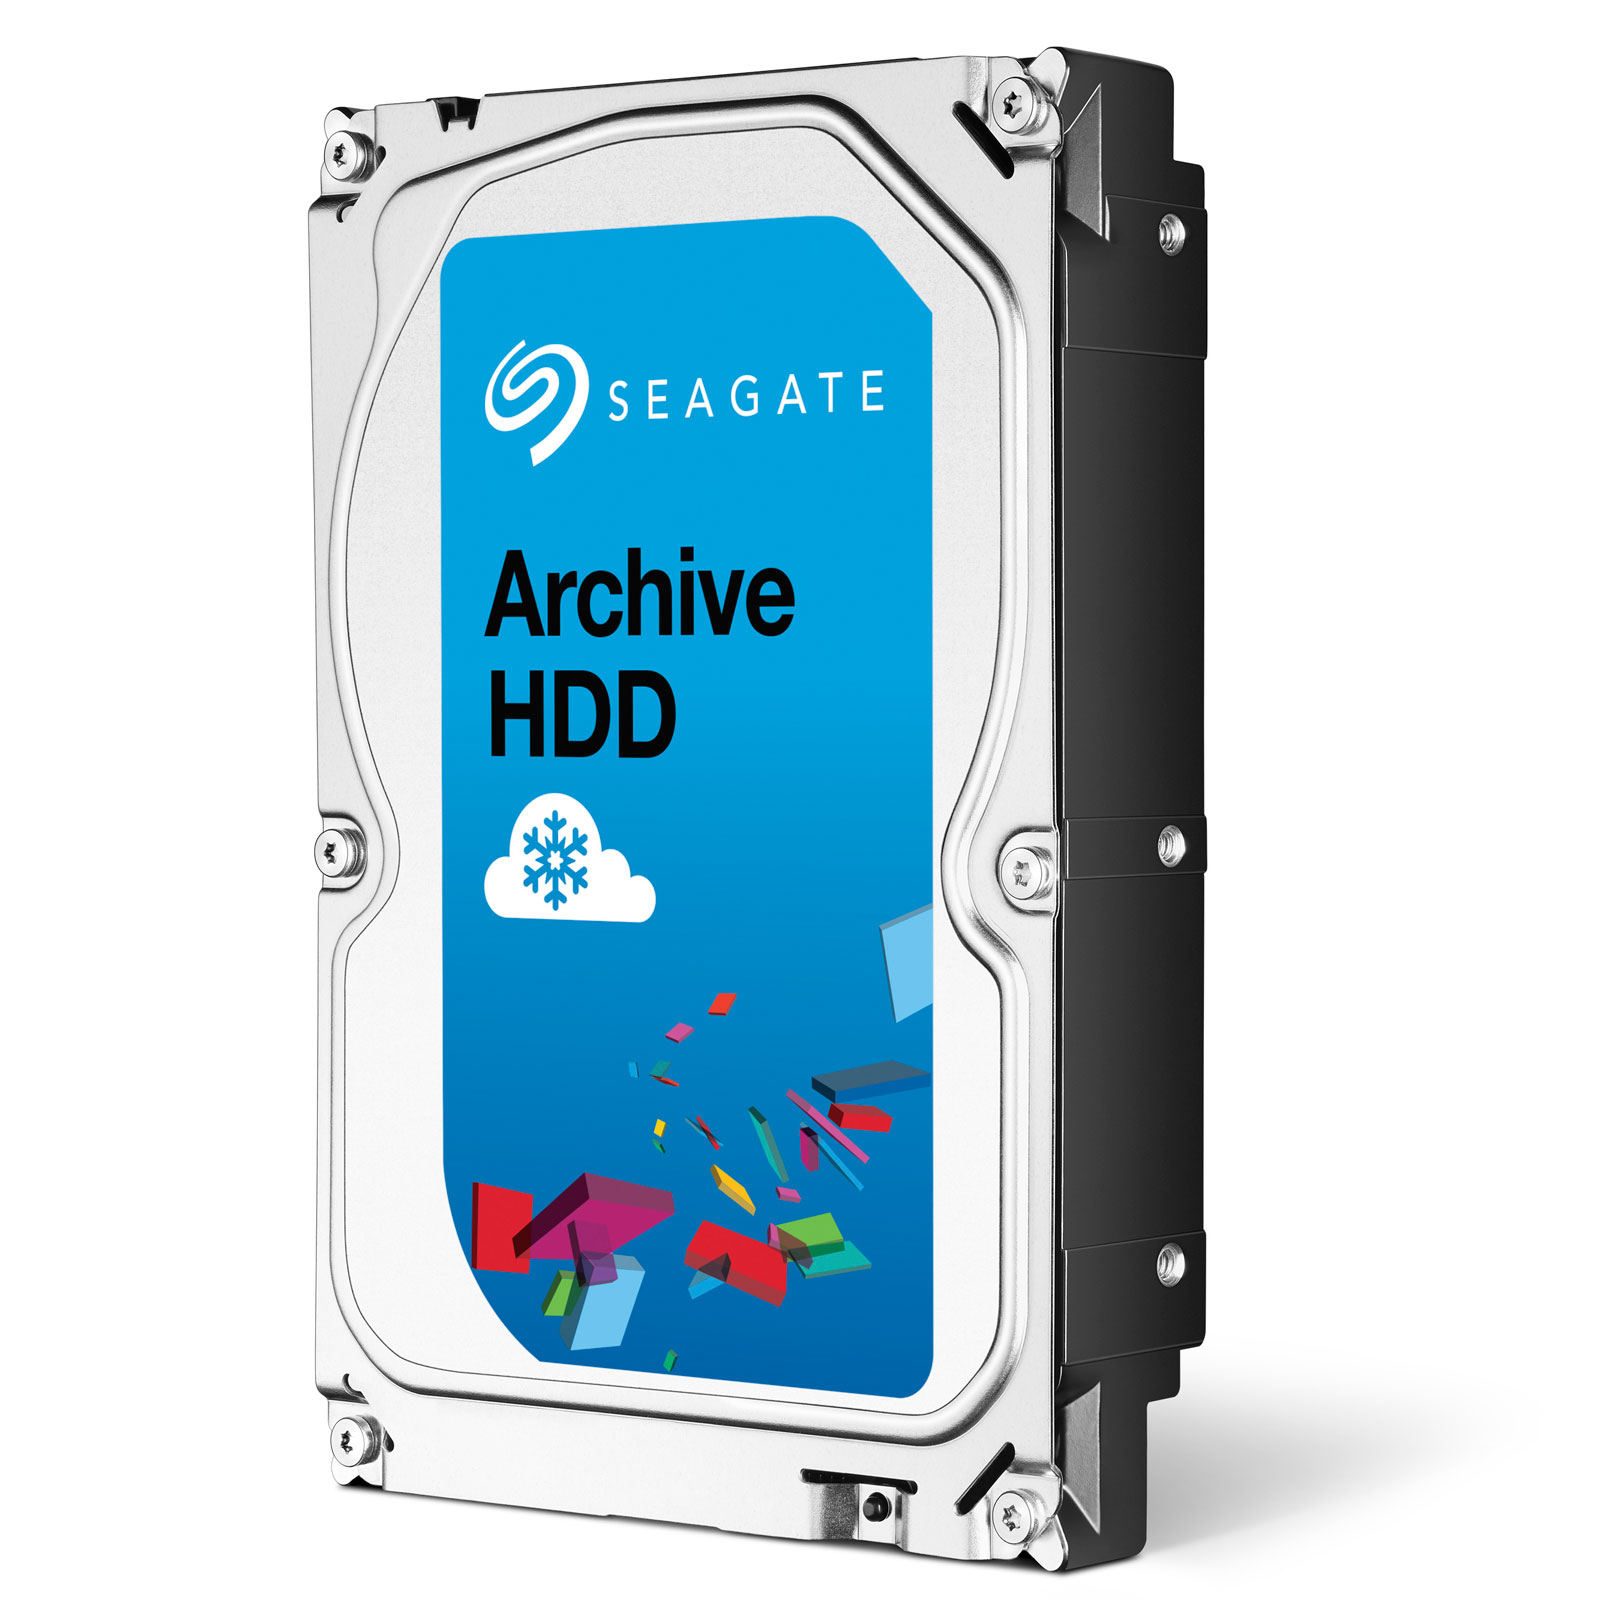 seagate archive hdd 6 to disque dur interne seagate. Black Bedroom Furniture Sets. Home Design Ideas